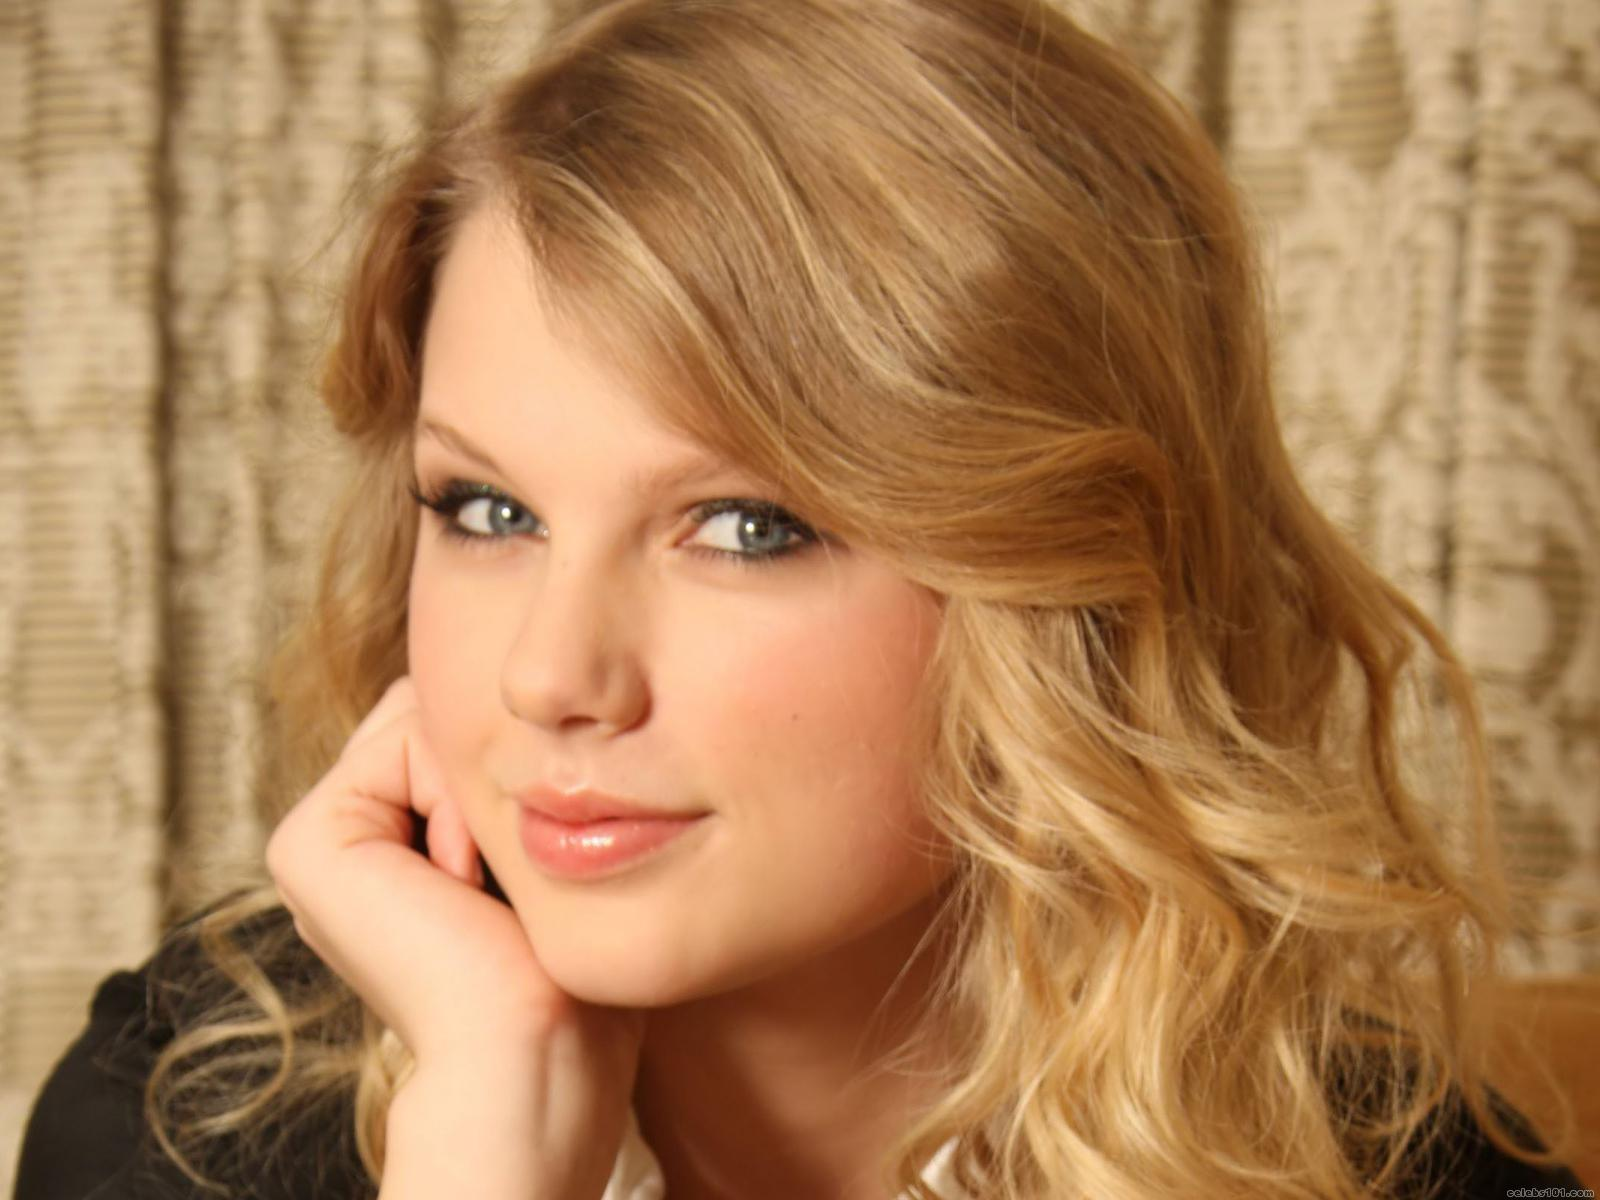 http://4.bp.blogspot.com/-WP3o3HQvbn8/UF0eZqJZ90I/AAAAAAAACdg/2vK9vdj_GI0/s1600/Taylor-Swift-Wallpapers-Latest-6.jpg